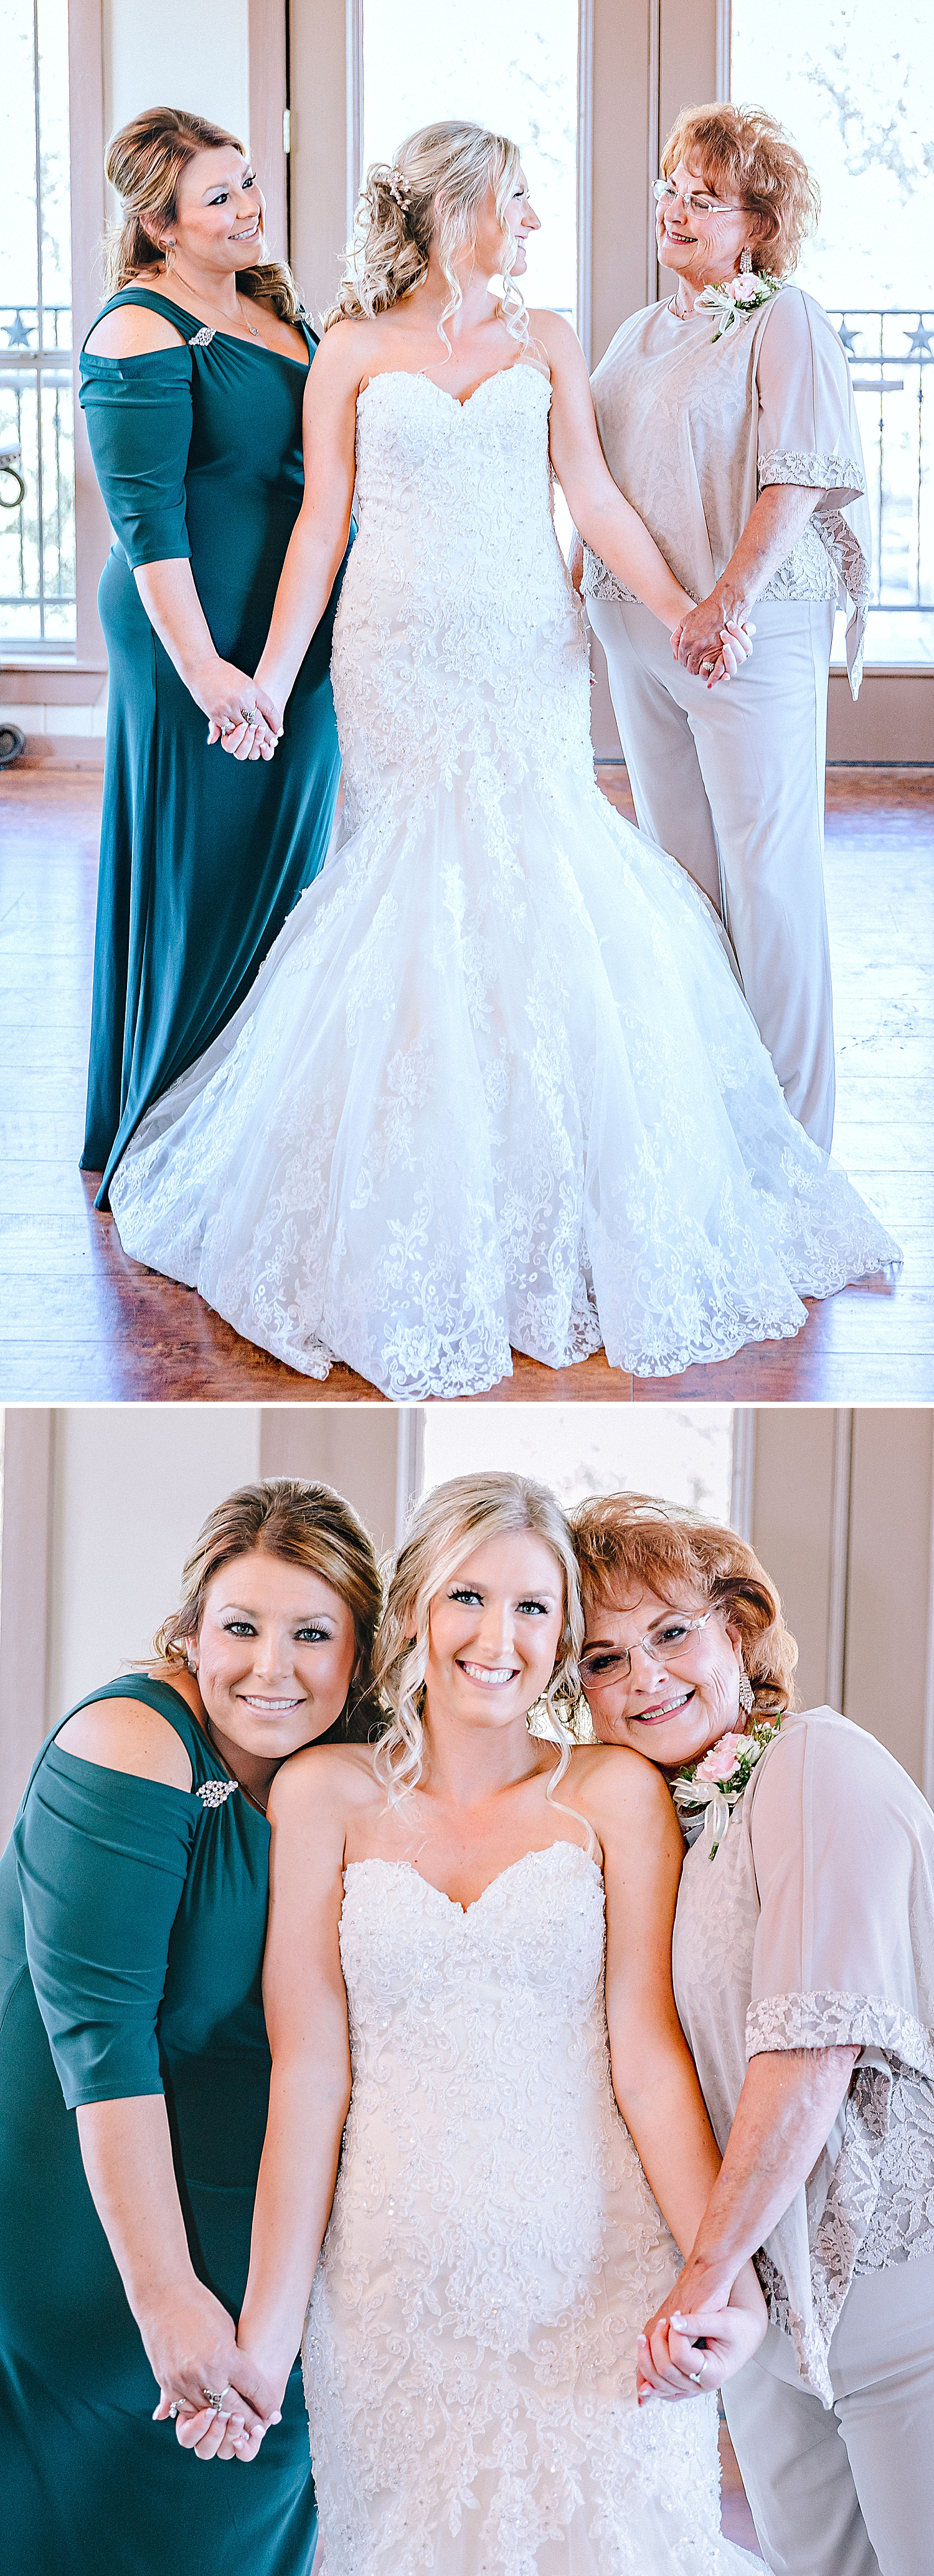 Rackler-Ranch-LaVernia-Texas-Wedding-Carly-Barton-Photography_0056.jpg